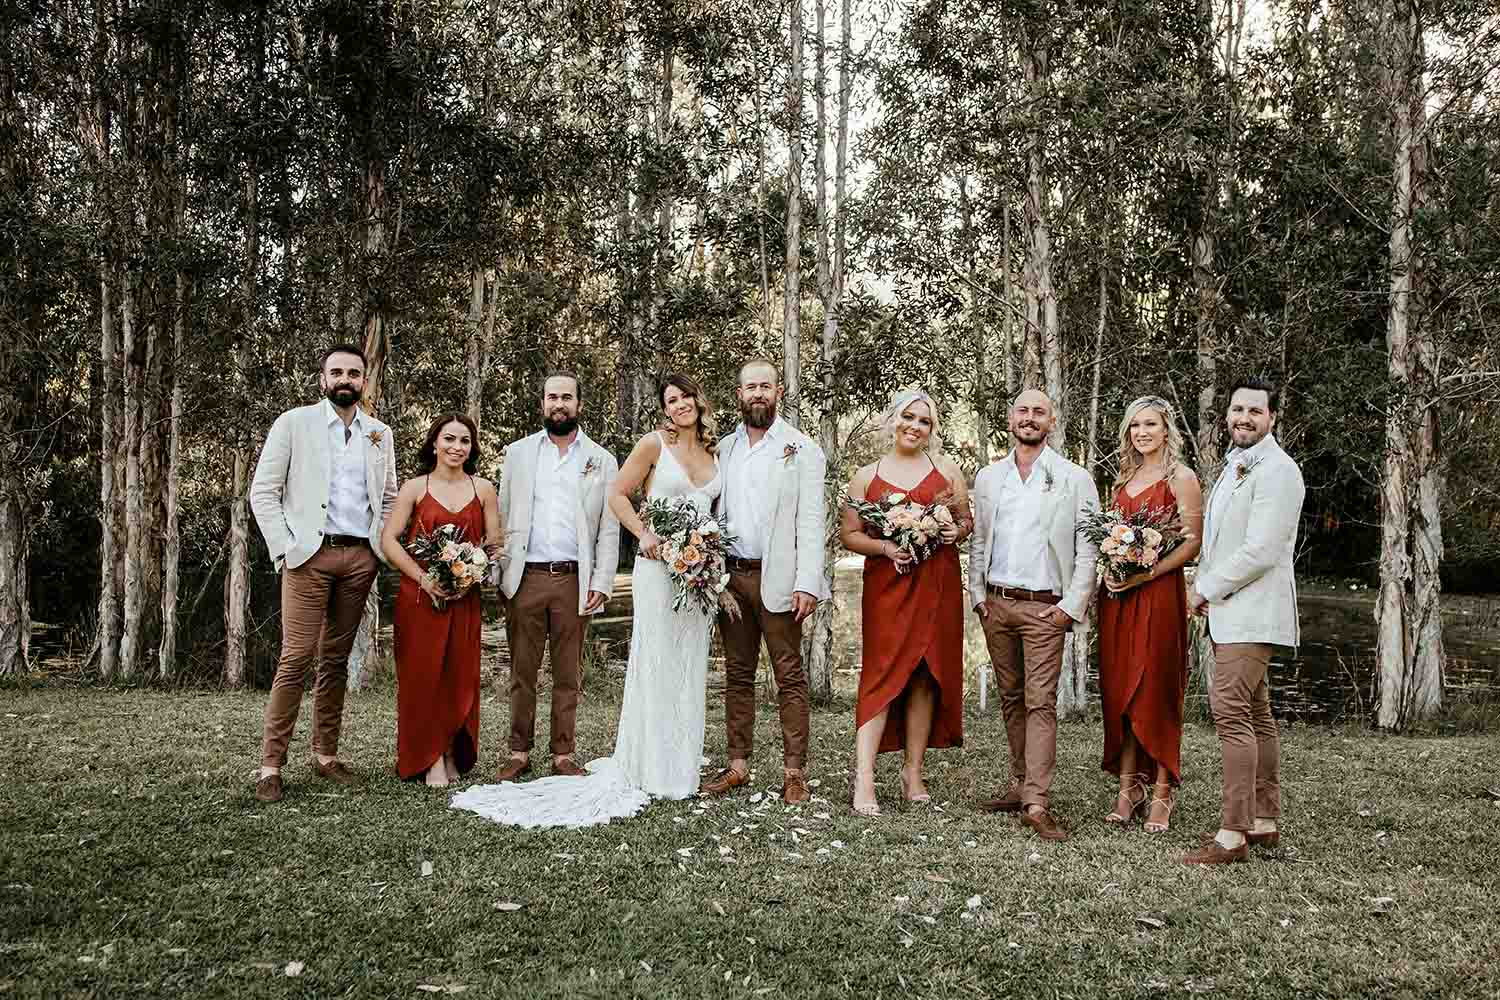 Bride and groom with their brodal party standing in a line smiling - wedding photographer - coffs coast wedding photographer - bellingen wedding photographer - nambucca valley wedding photographer - elopment